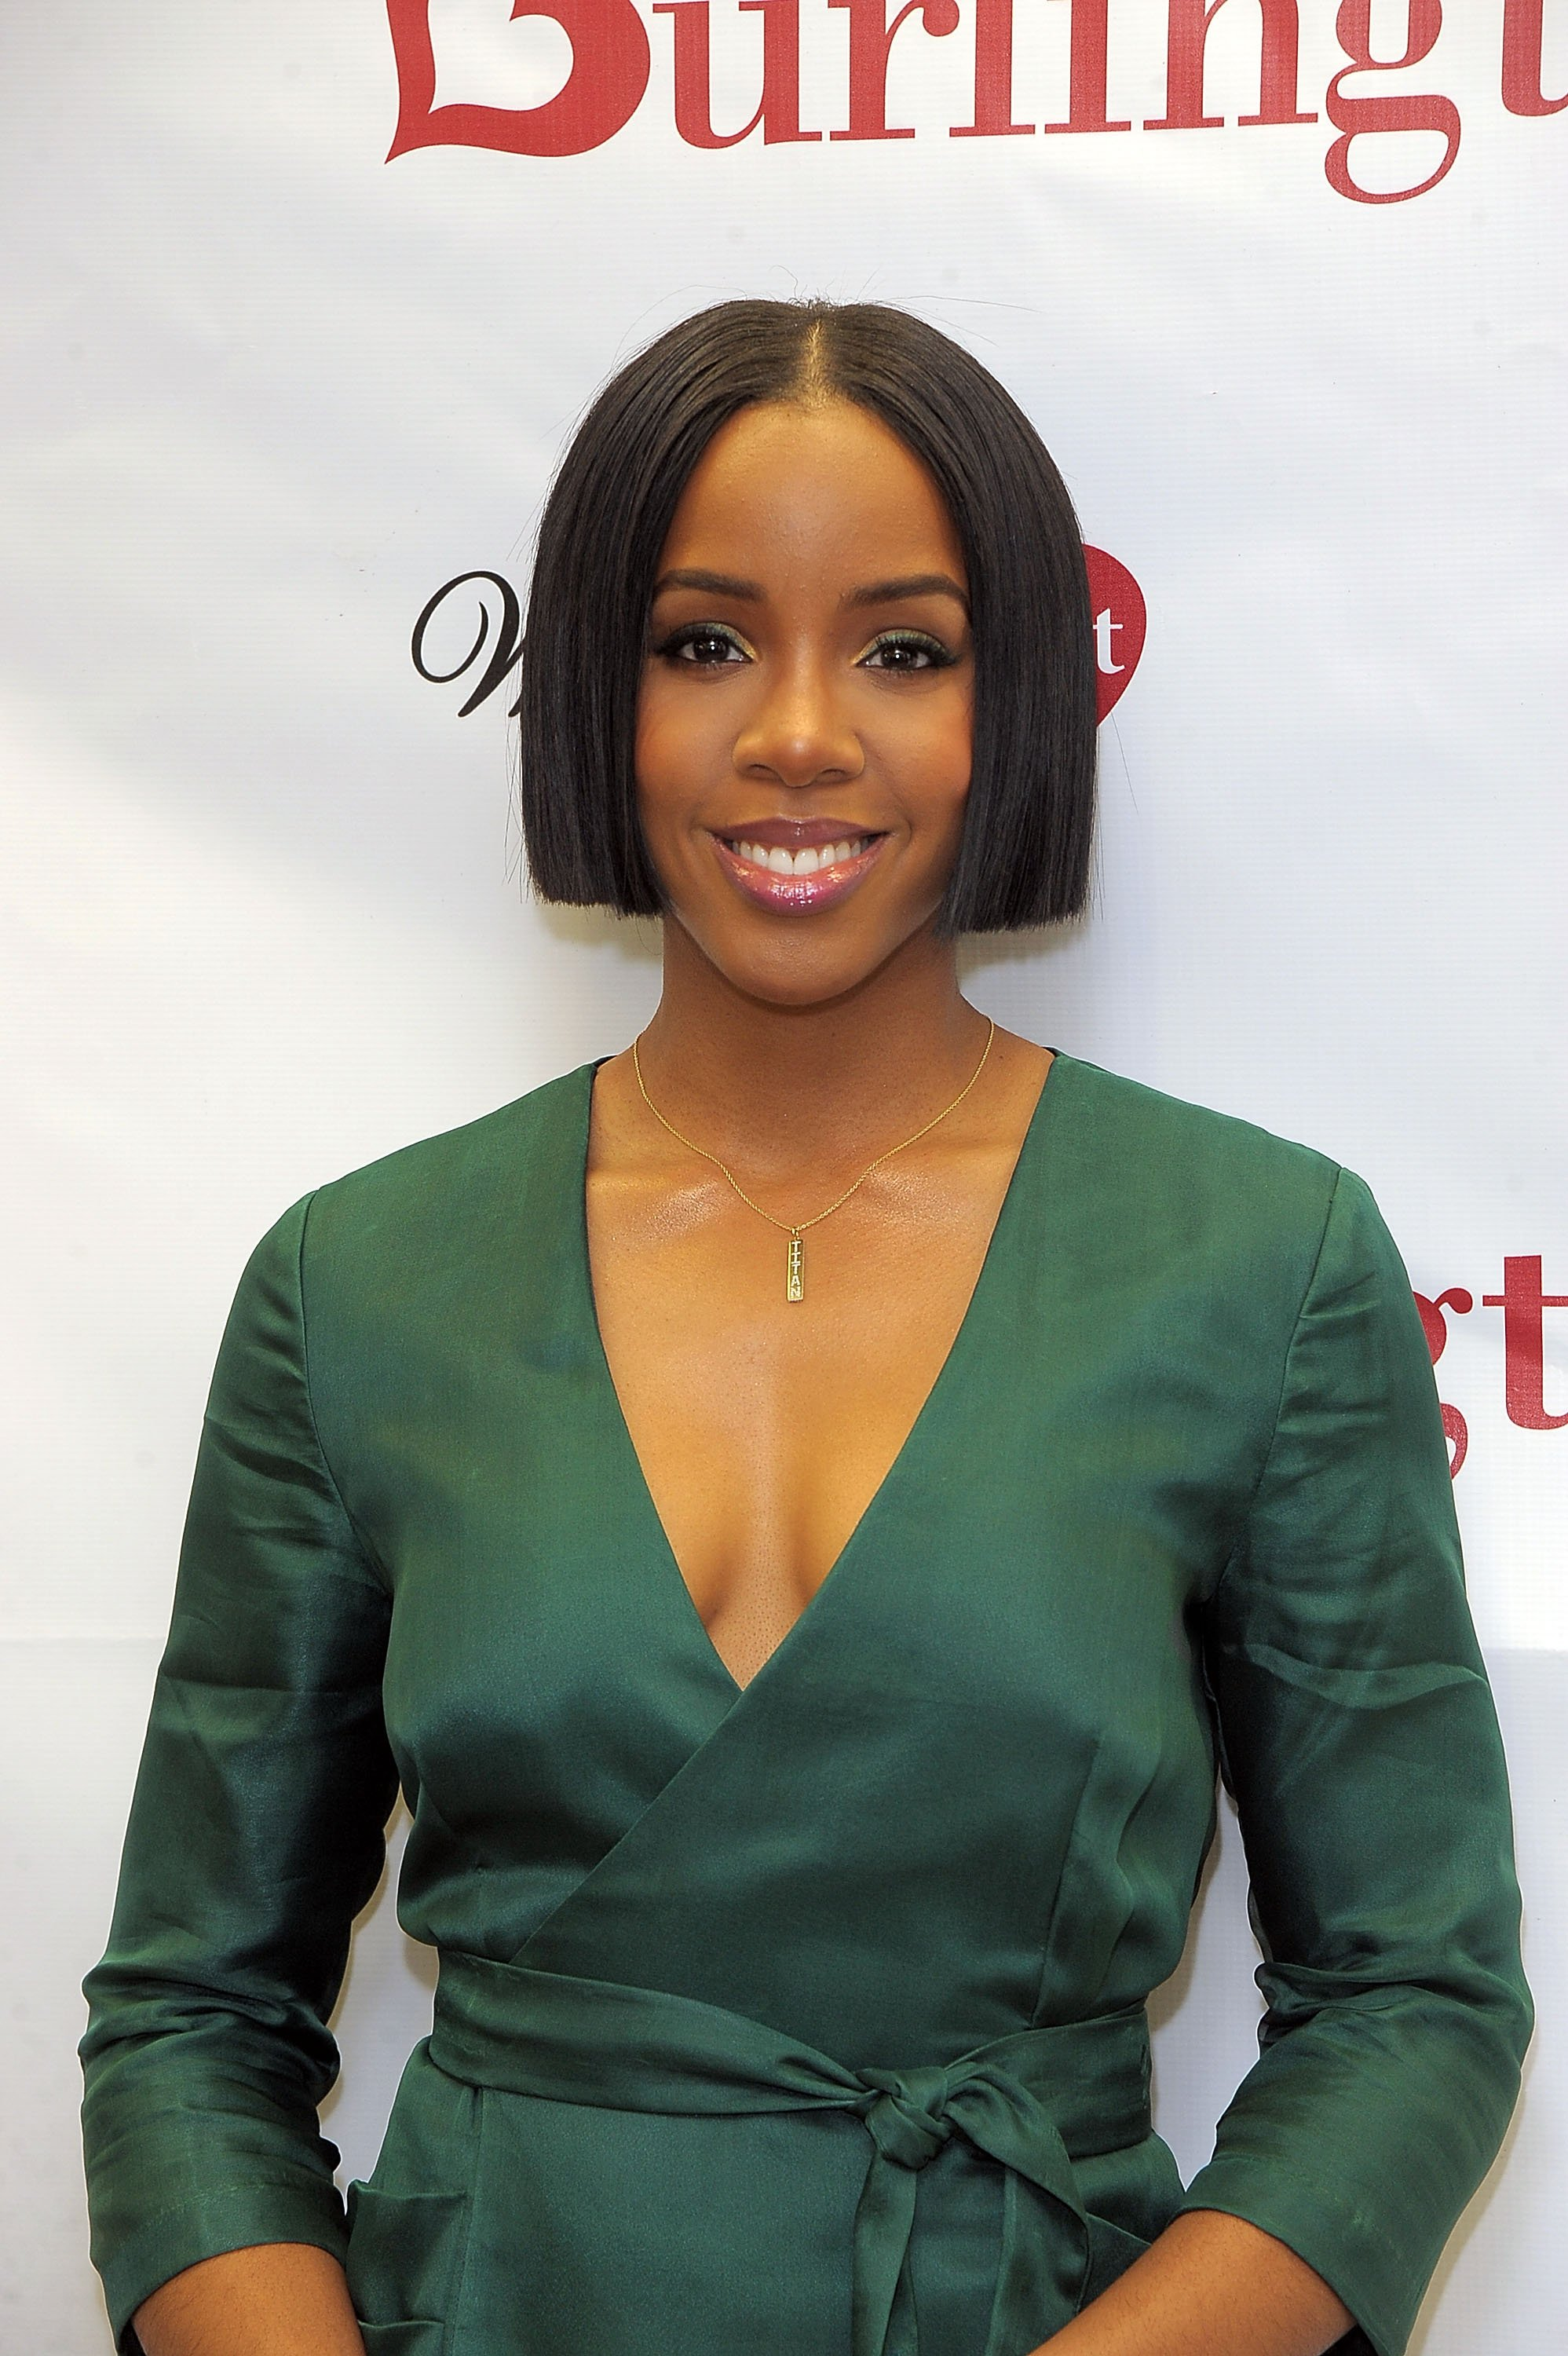 Kelly Rowland arrives at the Burlington Union Square in New York City on January 31, 2017. | Photo: Getty Images